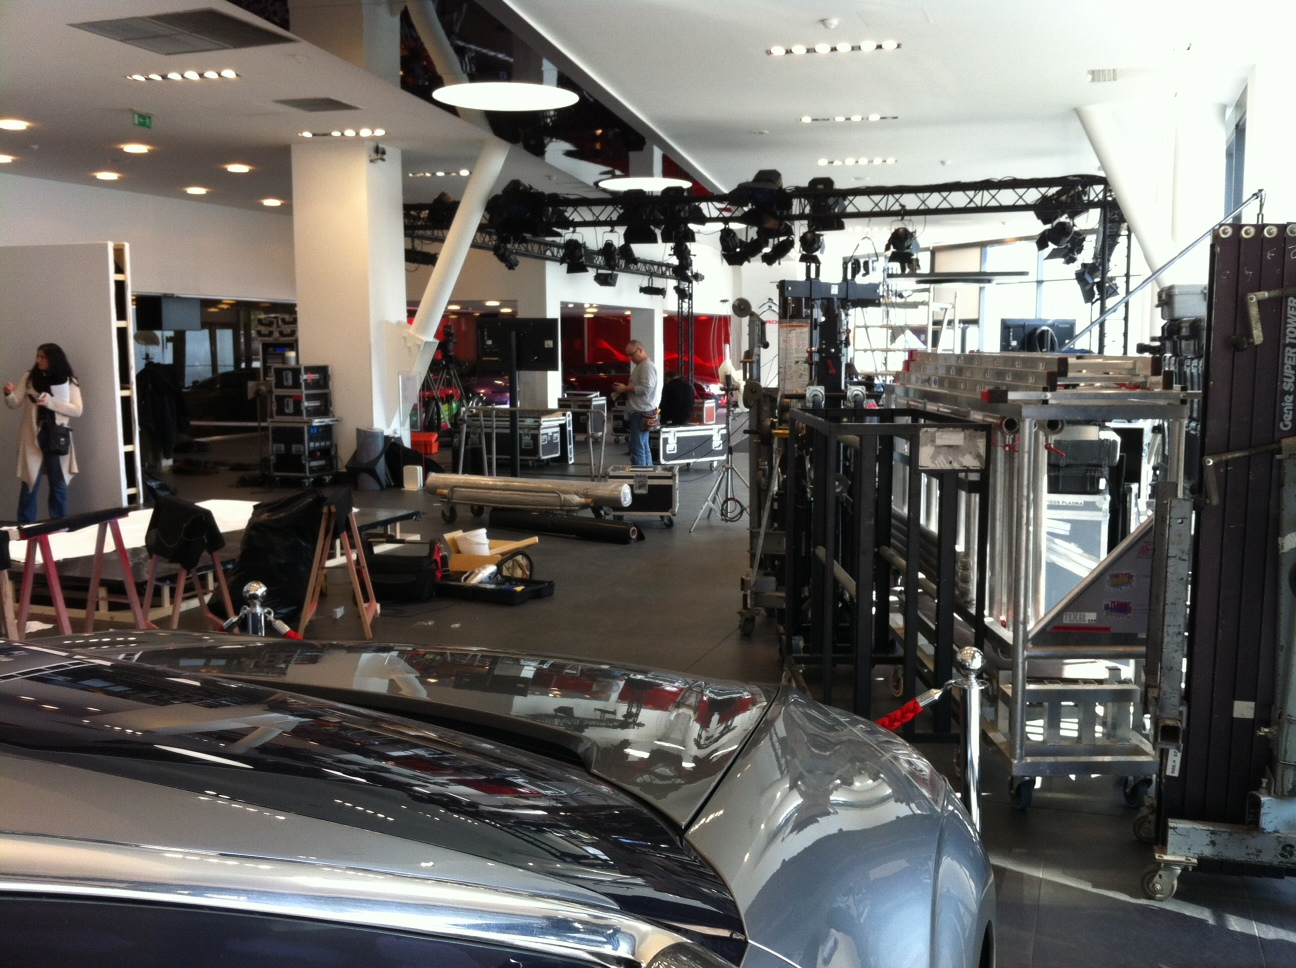 Garage Auto Aubervilliers My E Life Now Citroen Headquaters Showroom Closed Shooting